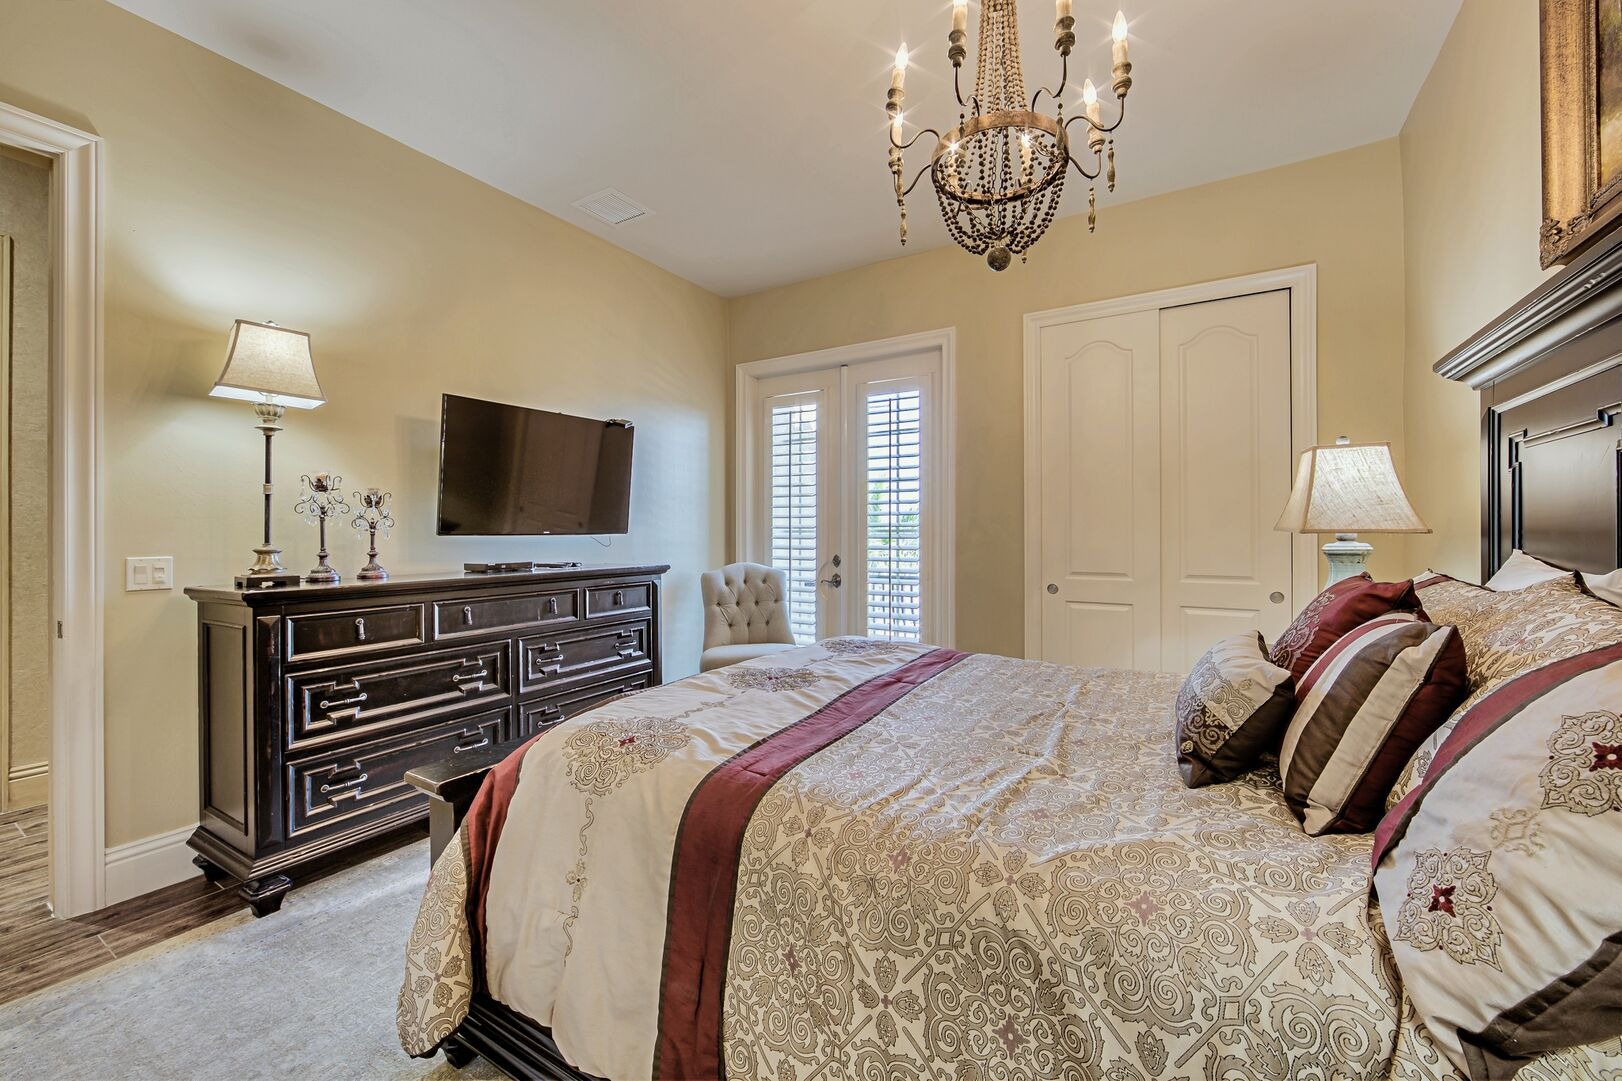 Large Bed, Drawer Dresser, TV, Closet, and the Window Doors to the Balcony.